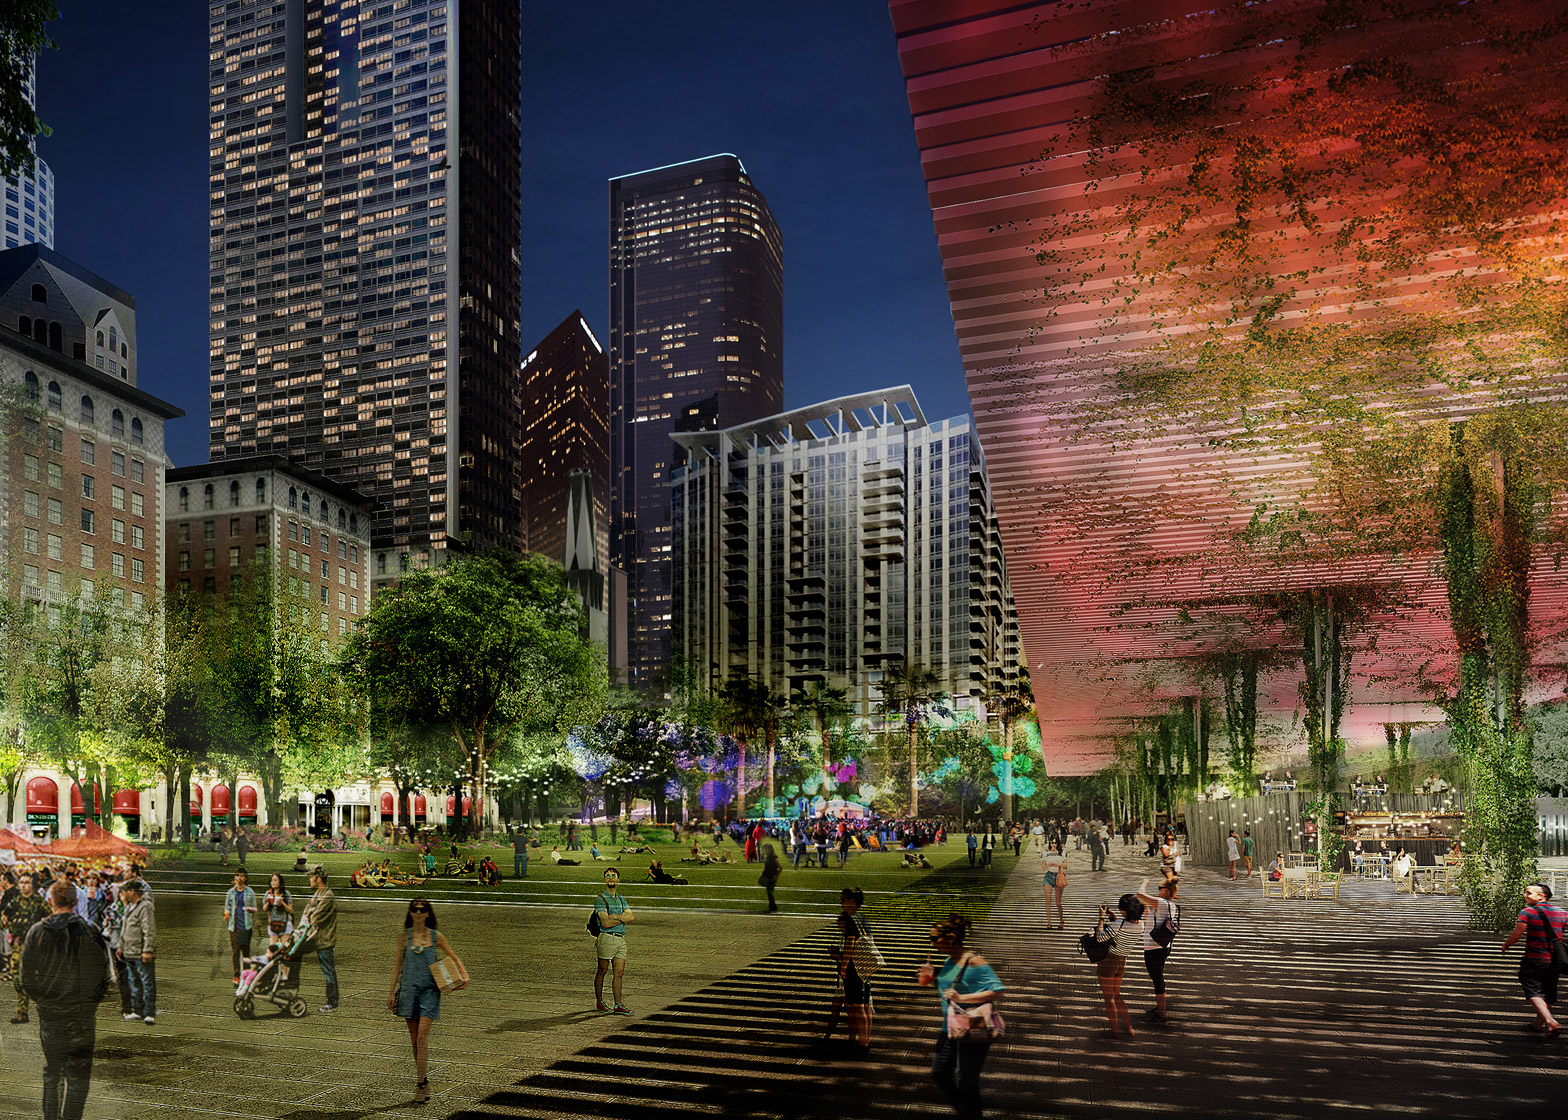 Agence Ter and Team Pershing square renovation proposal architecture news Los Angeles LA USA